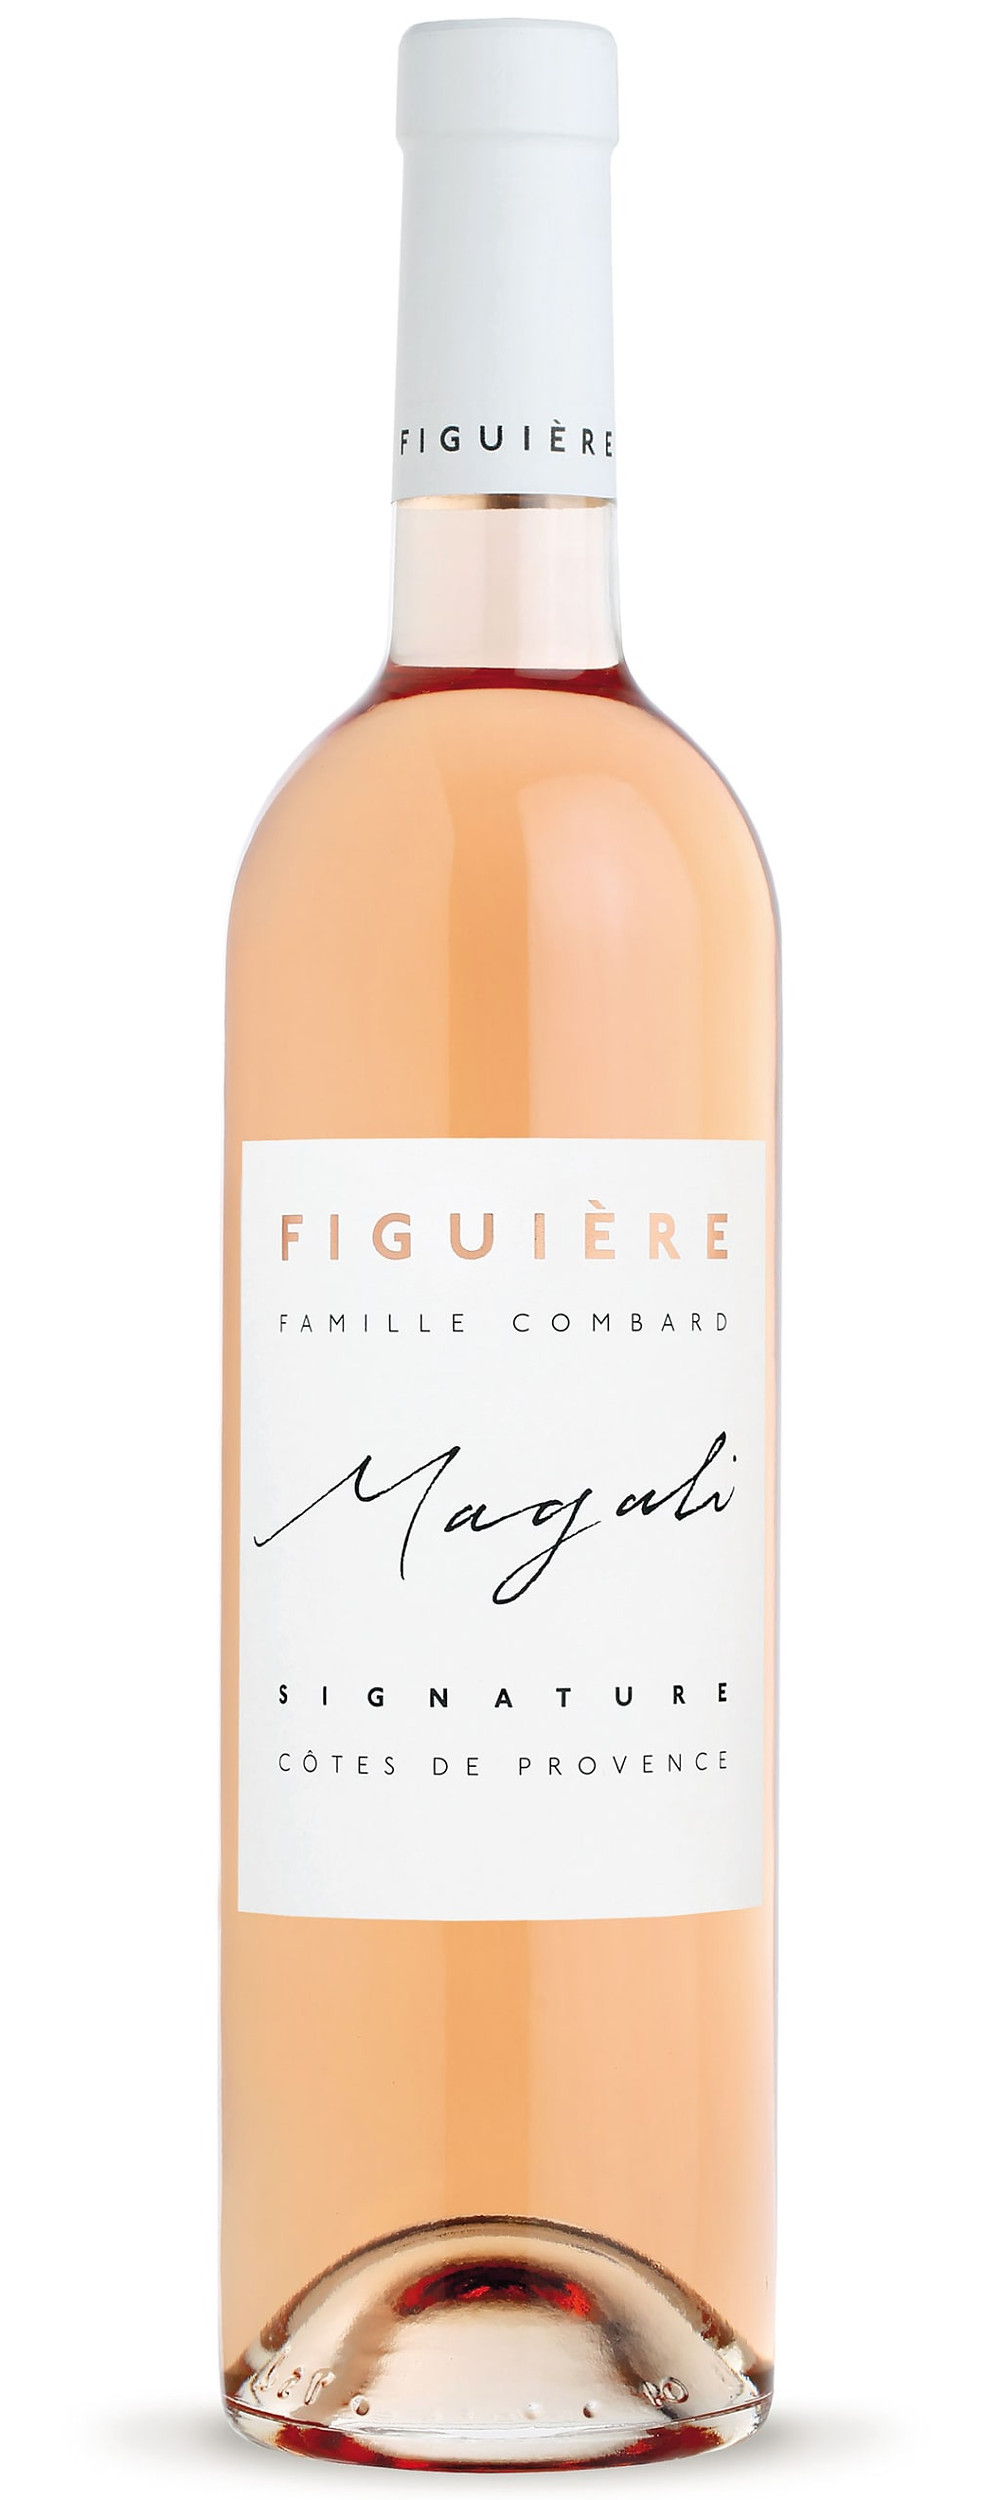 Bottle of Figuiere Cotes de Provence Signature Magali